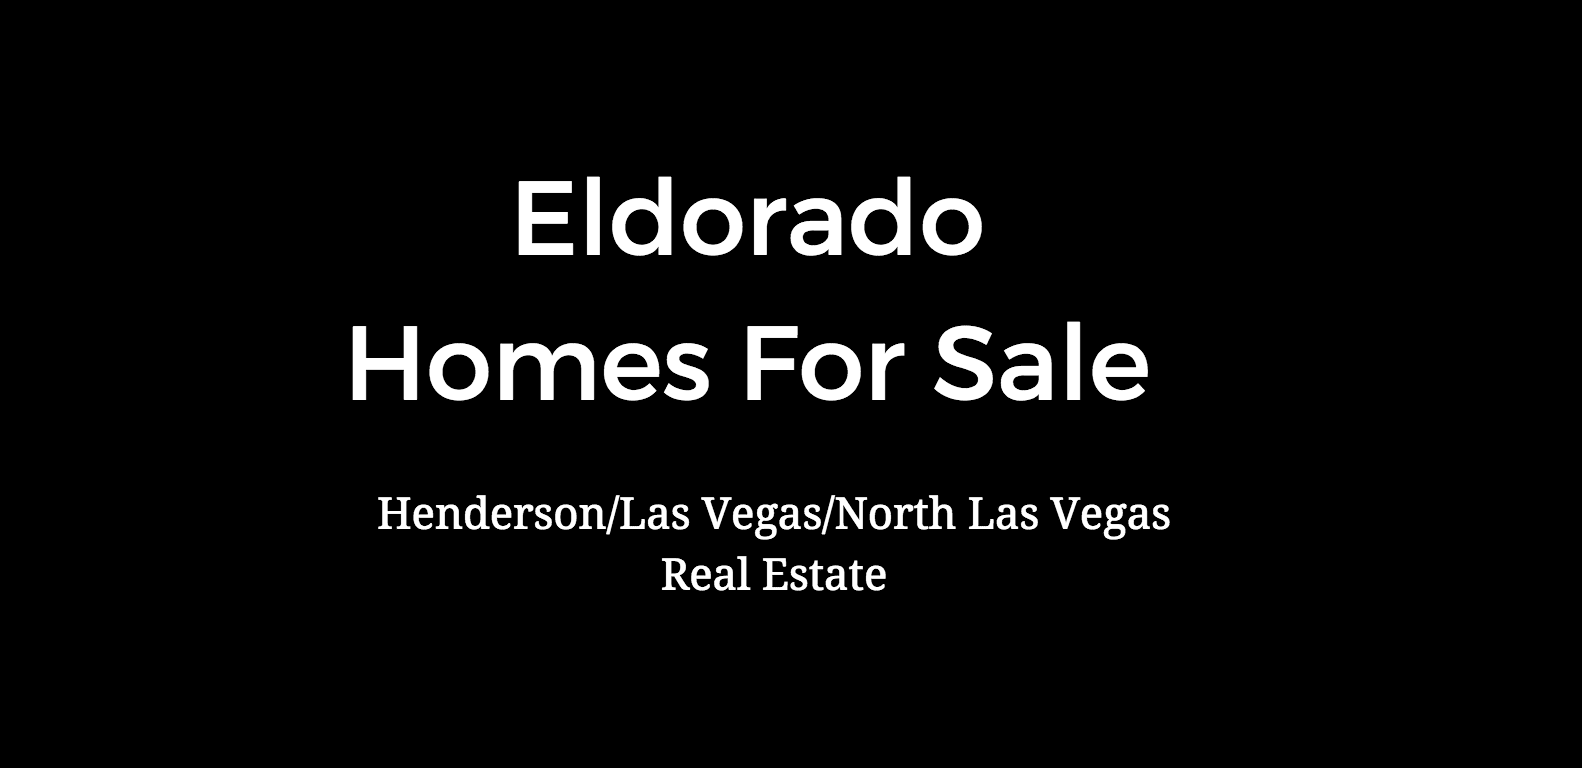 eldorado homes for sale las vegas nv